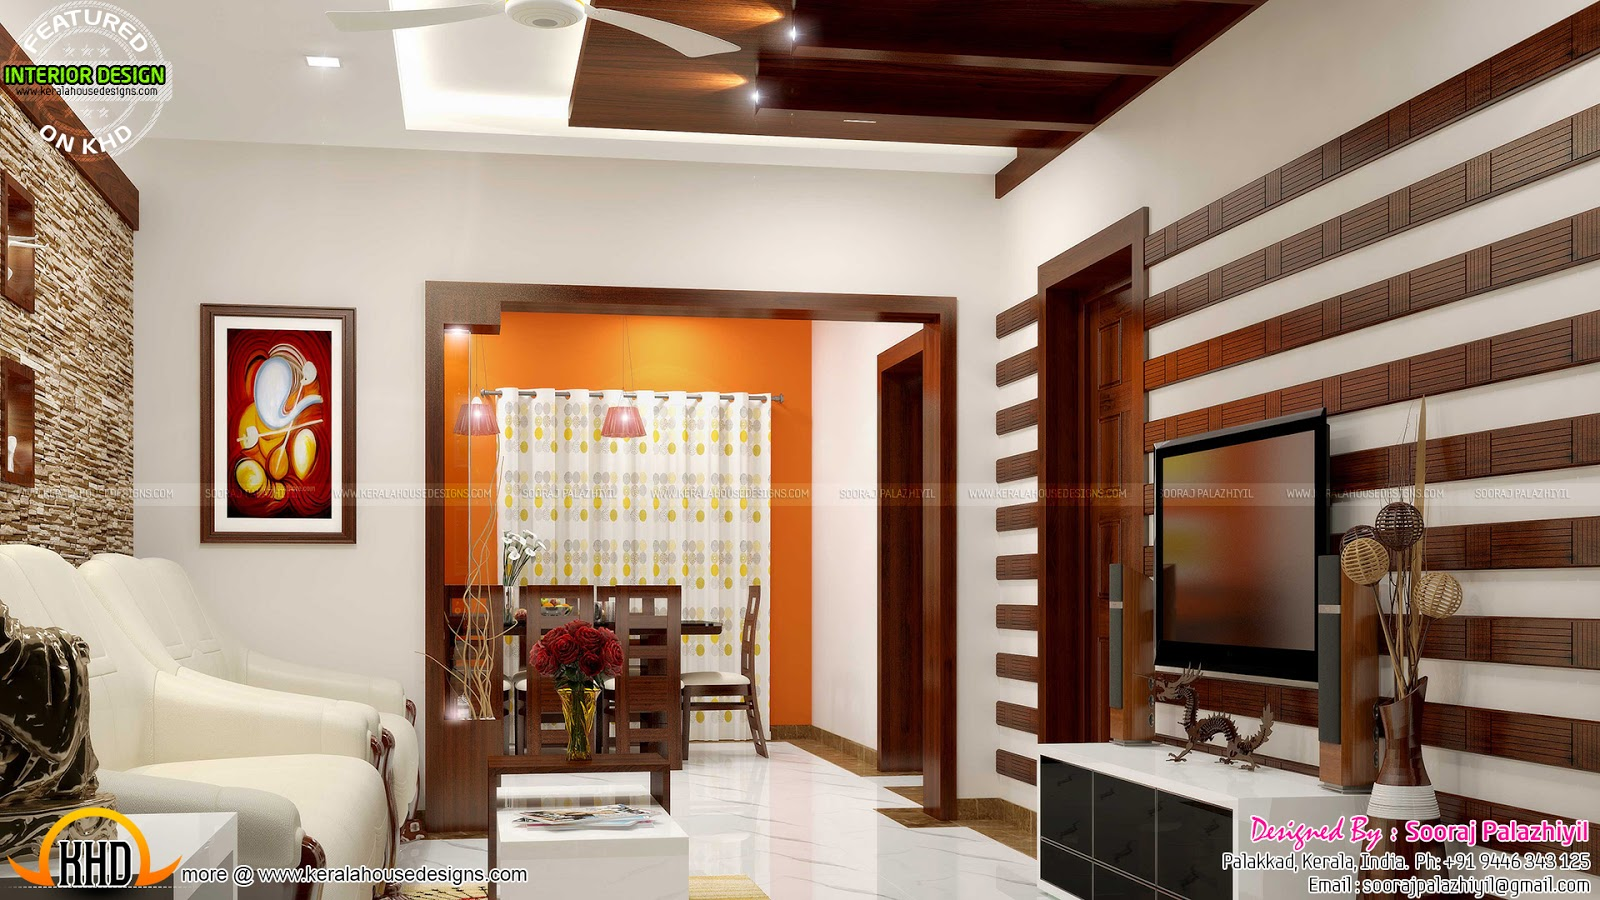 Simple apartment interior in kerala kerala home design and floor plans - Room design photos ...